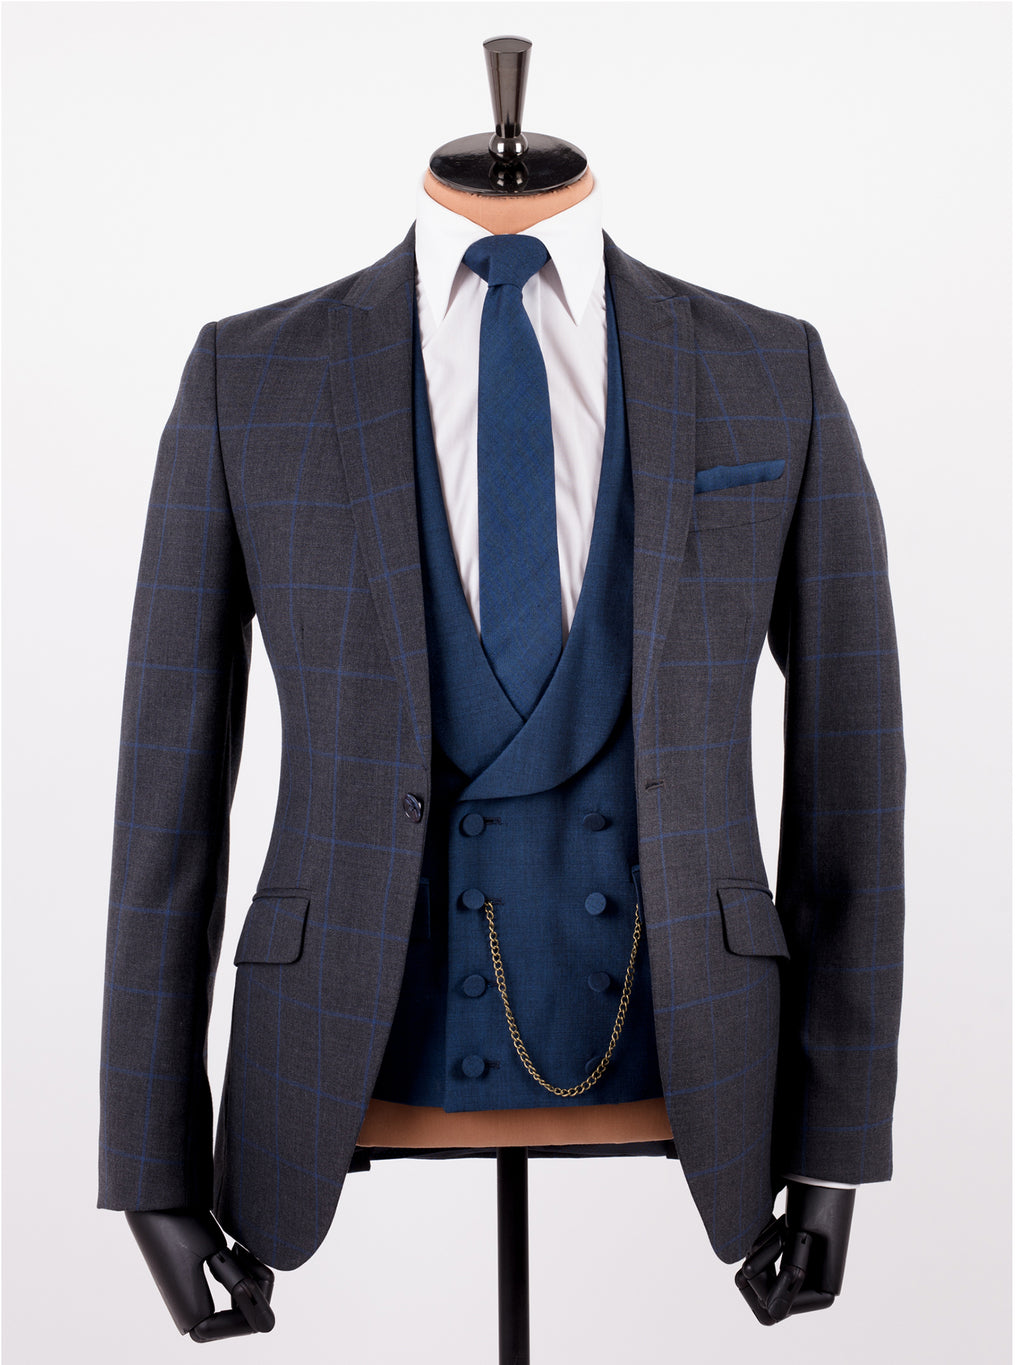 Grey Blue Windsor Check Wedding Suit – FOCUS Suits|Hire|Casual